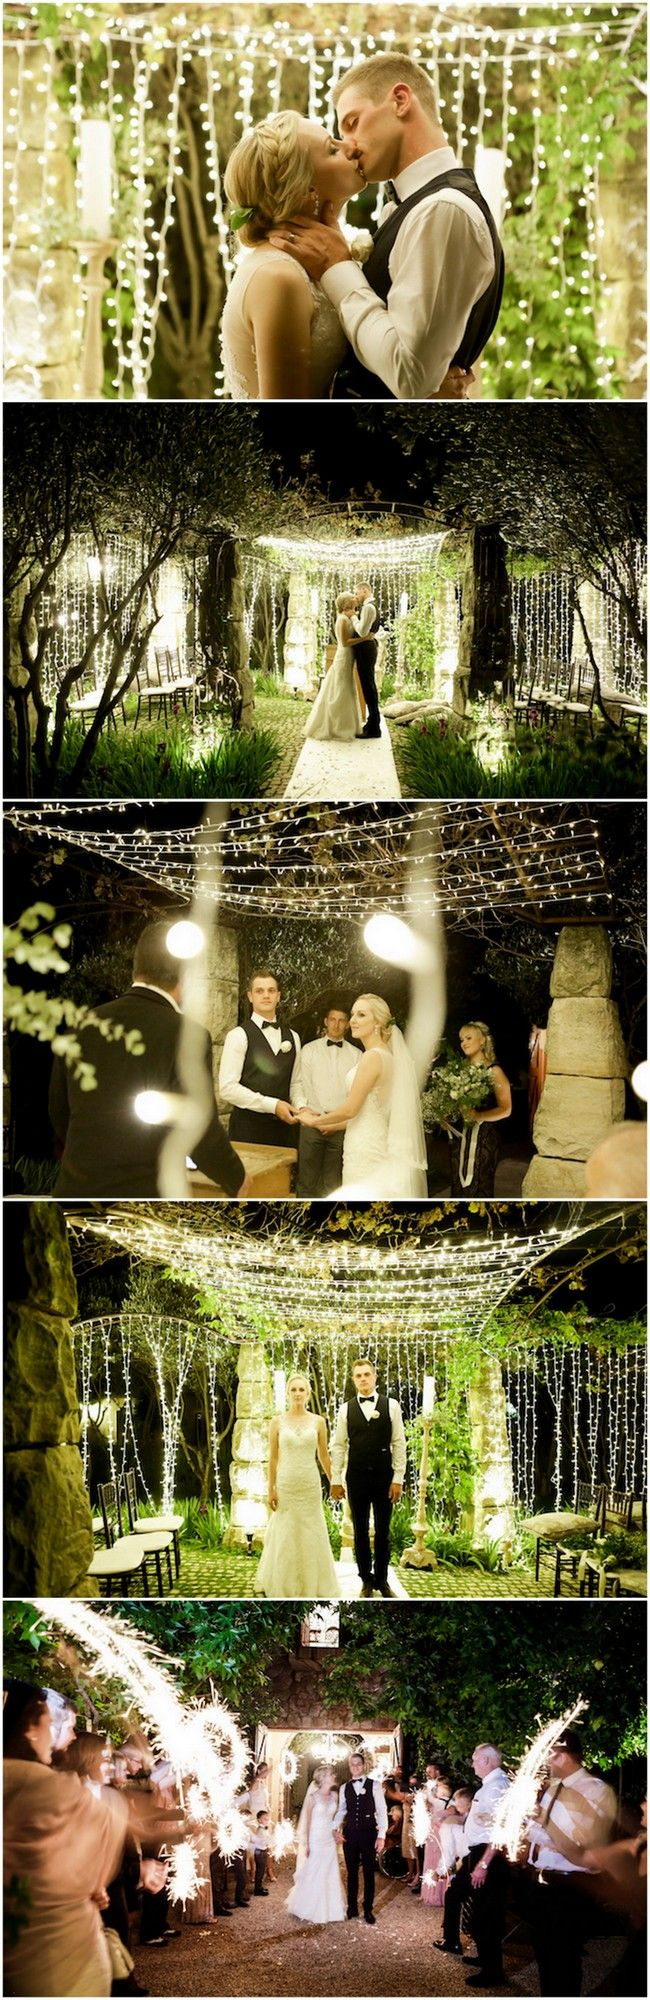 Their Outdoor Night Wedding Ceremony Set The Night Alight With Magic Thanks  To Twinkling Fairy Lights